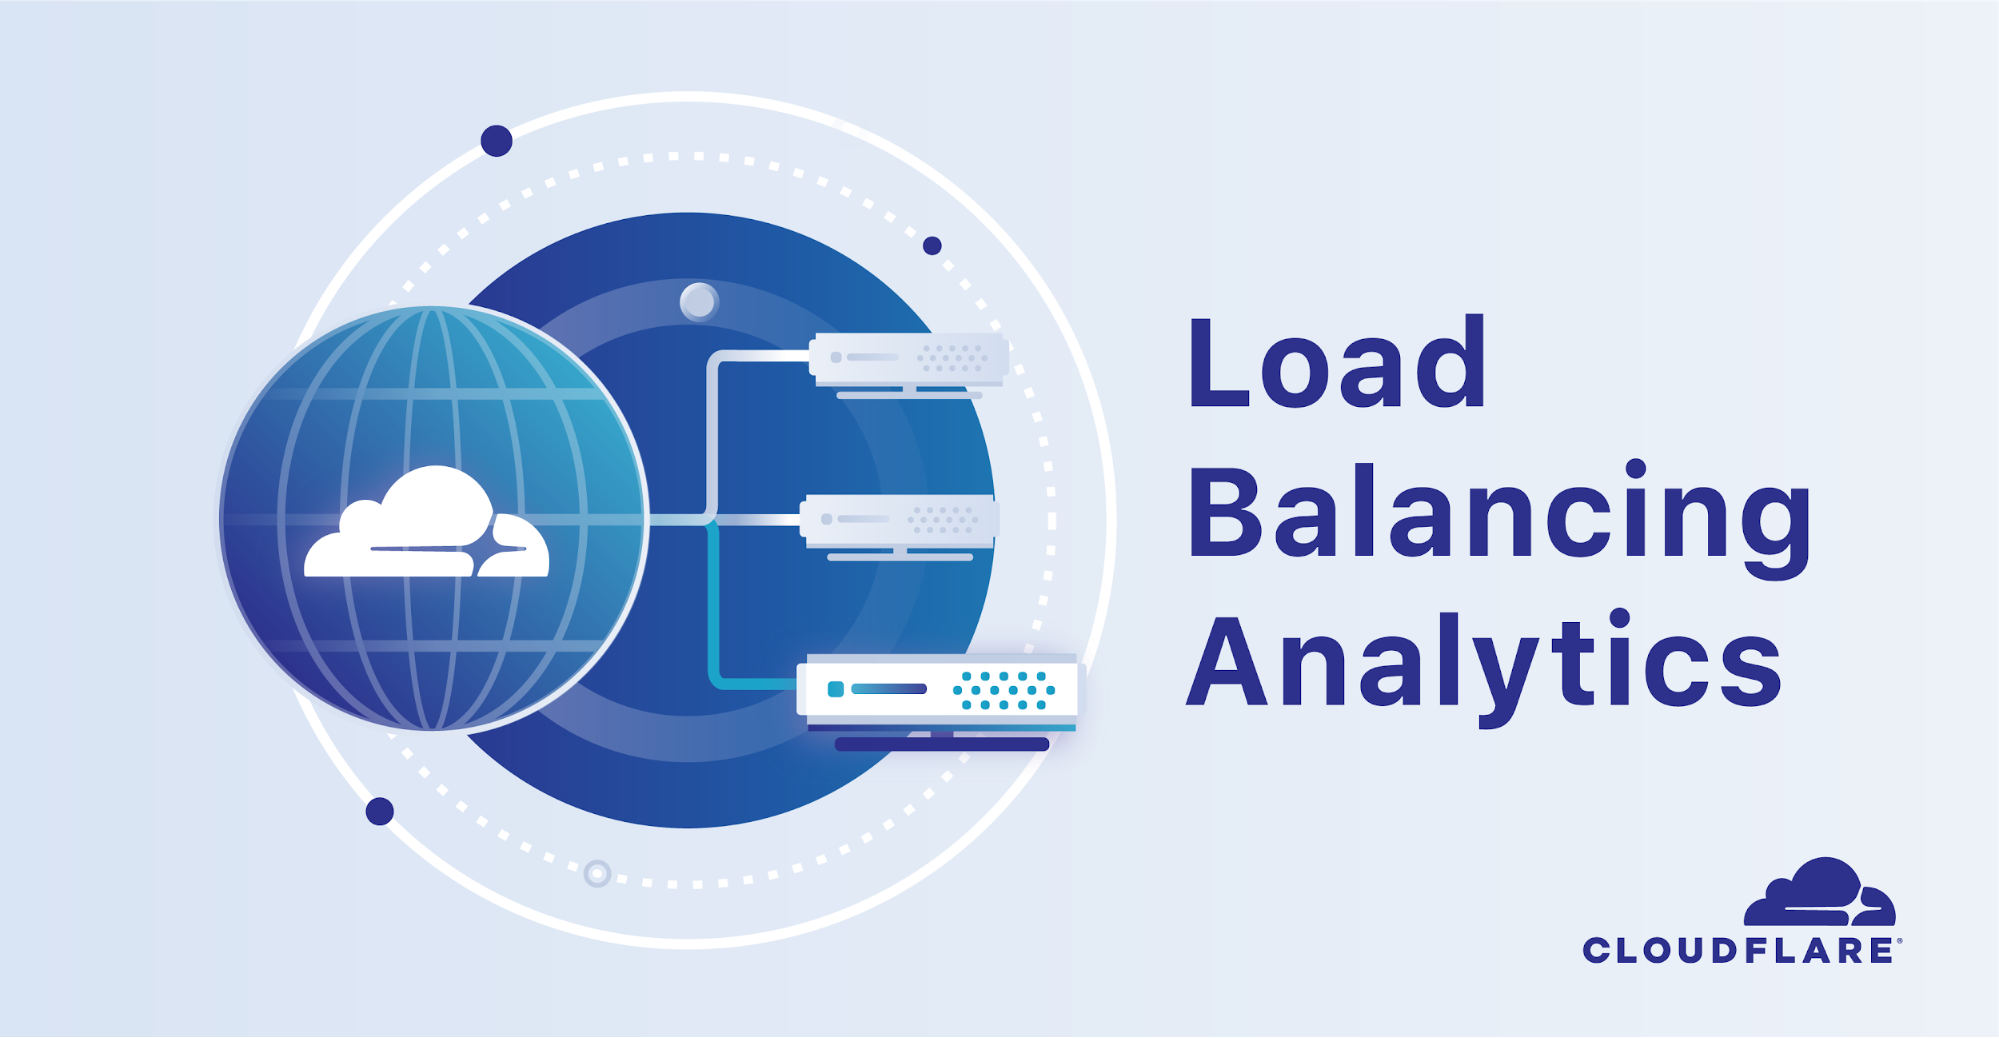 Introducing Load Balancing Analytics